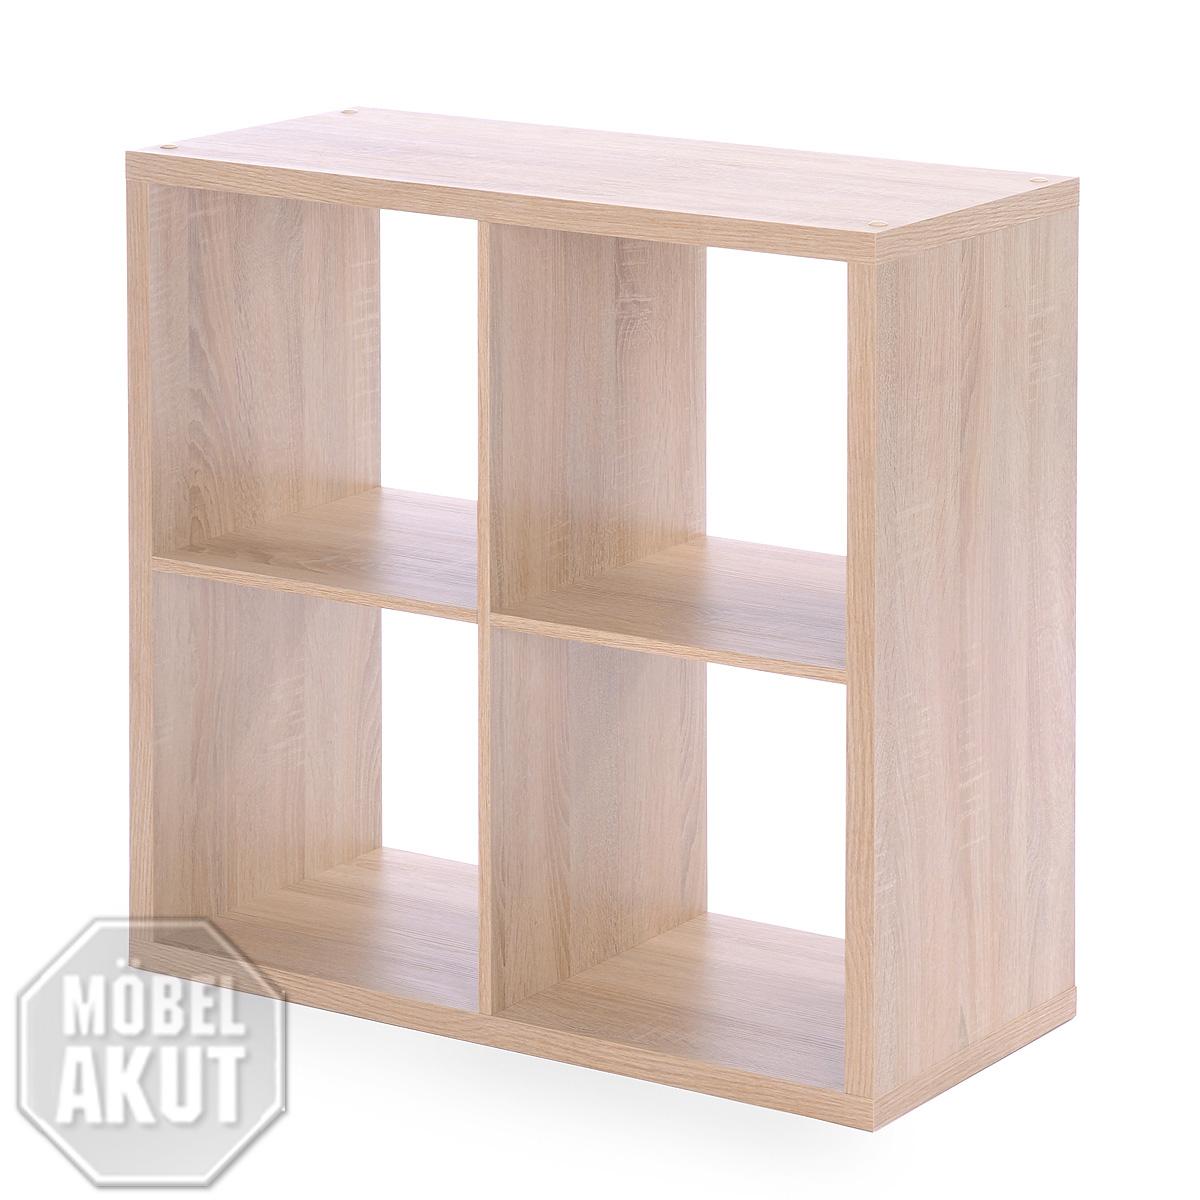 regal moritz w rfel raumteiler farbauswahl eiche wei anthrazit ebay. Black Bedroom Furniture Sets. Home Design Ideas